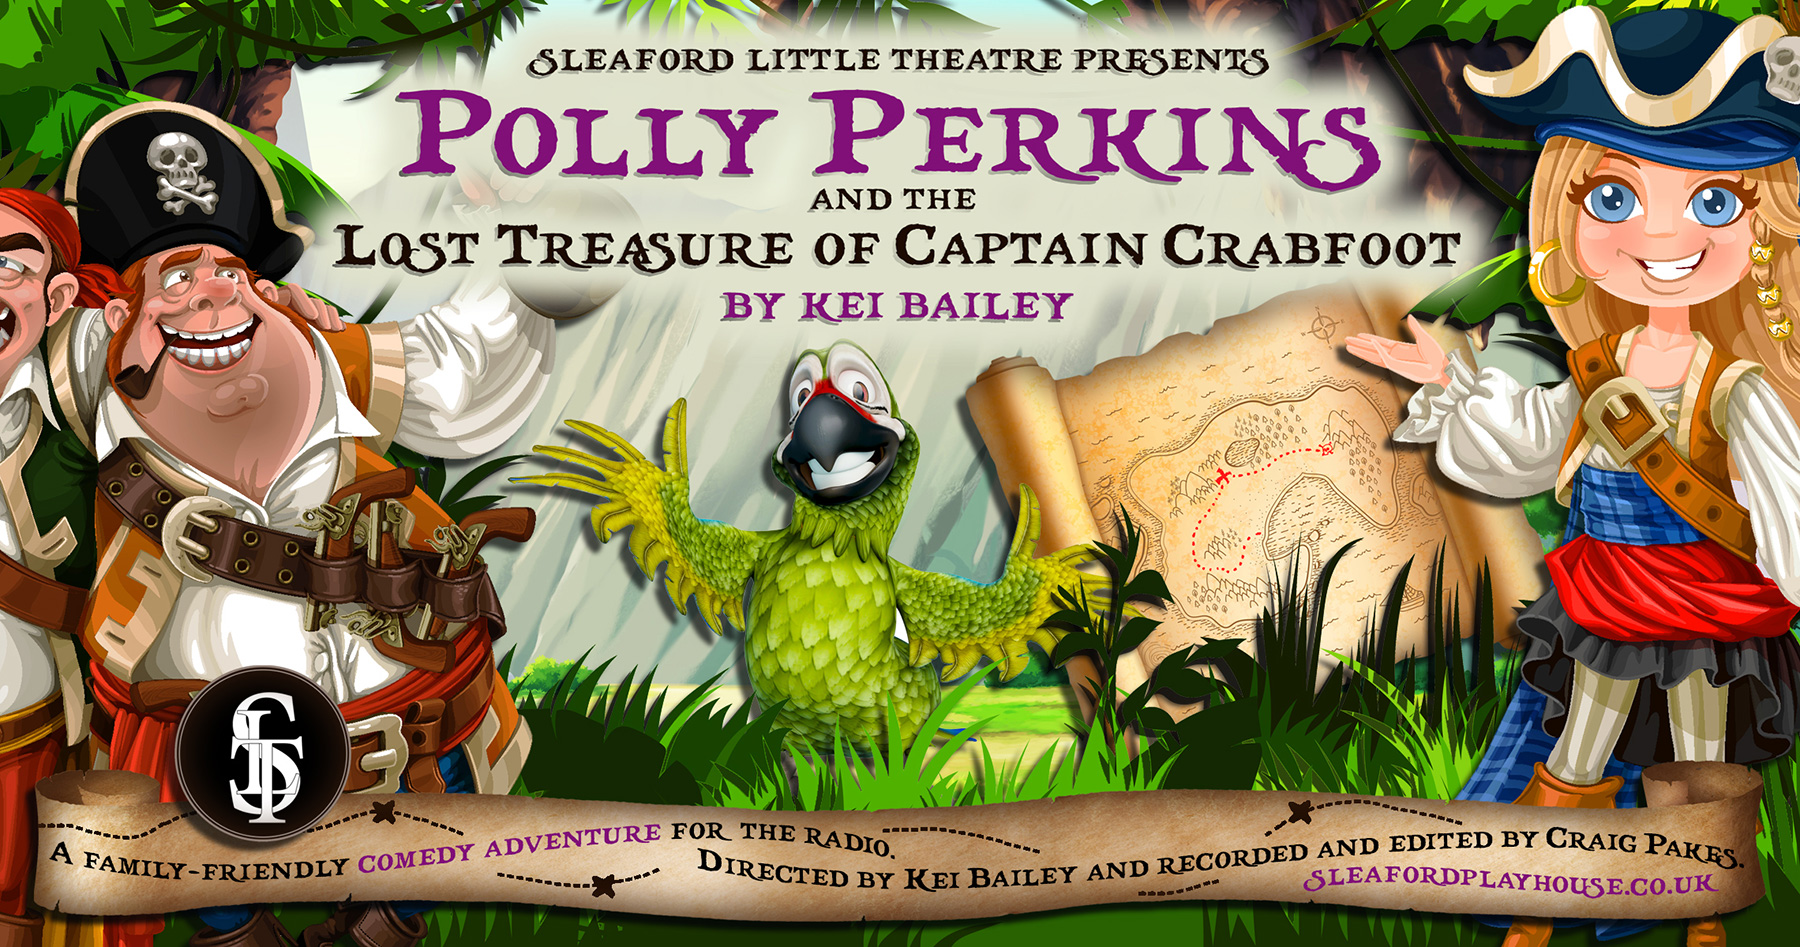 Polly Perkins and the Lost Treasure of Captain Crabfoot poster graphic